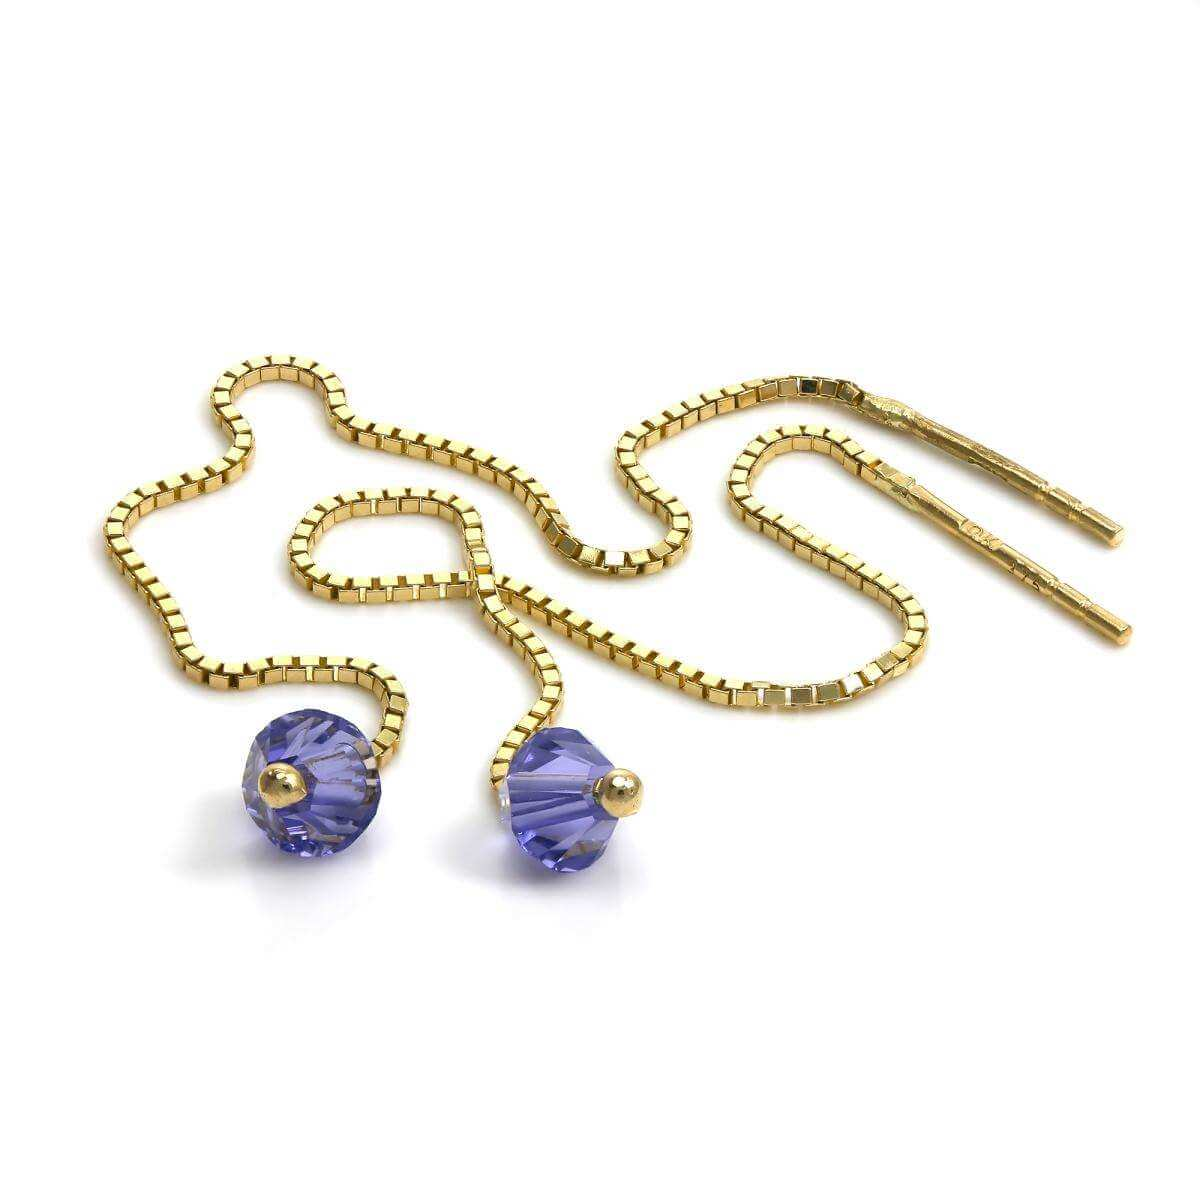 9ct Gold Pull Through Box Chain Earrings with Amethyst CZ Crystal